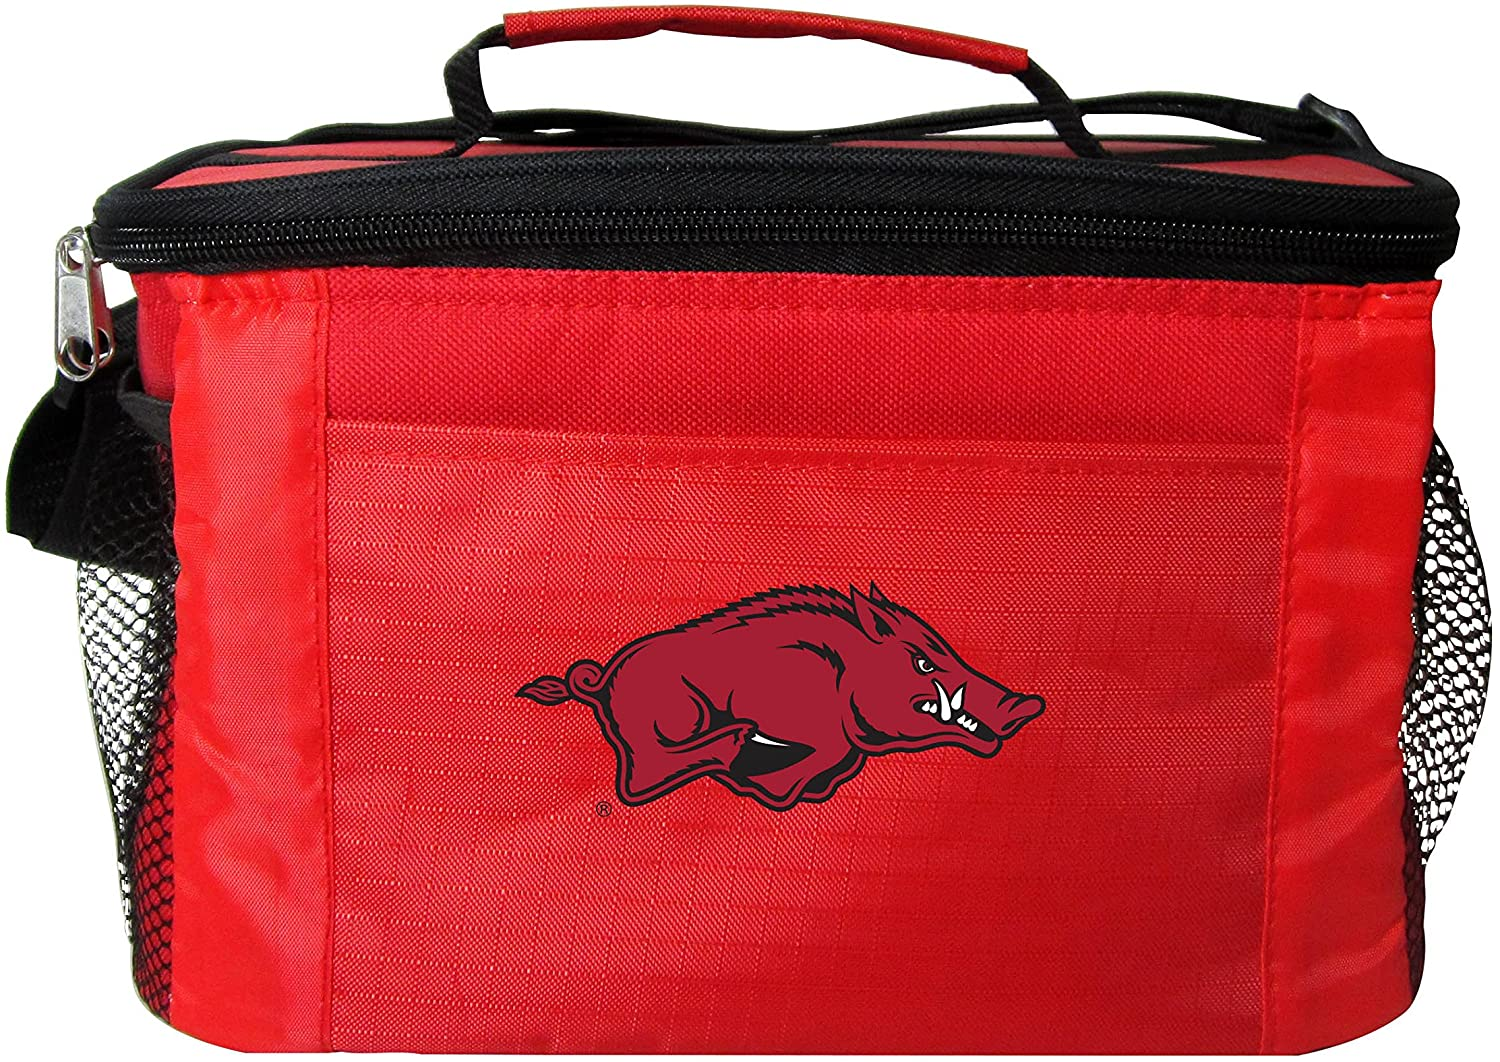 NCAA Arkansas Razorbacks Insulated Lunch Cooler Bag with Zipper Closure, Red